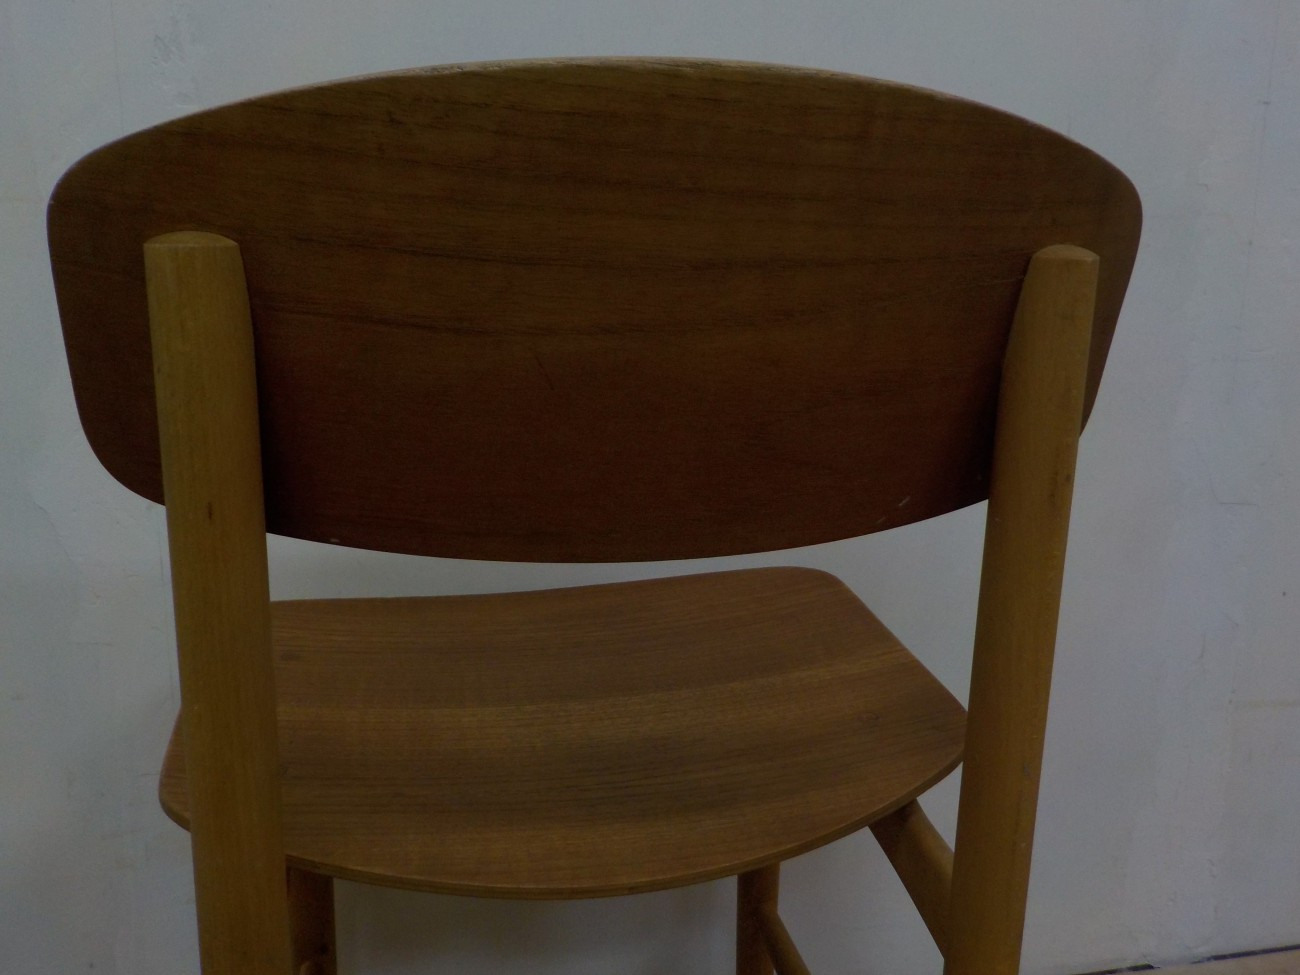 Borge Mogensen model122 Dining Chair / チークxビーチ ボーエ・モーエンセン ダイニングチェア / stock2012-33-(2)